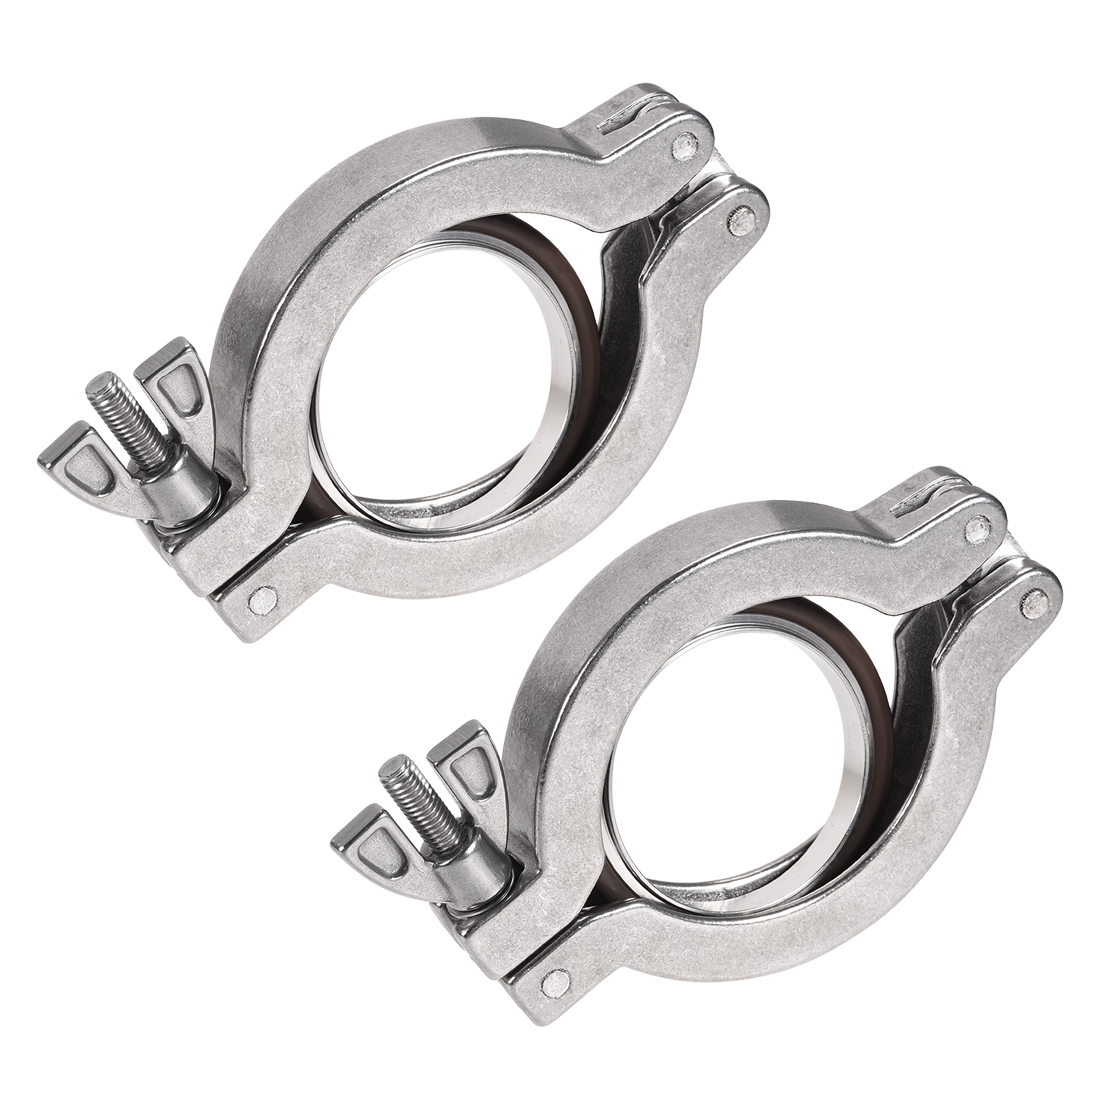 Sanitary -Clamp 68mm x 47mm KF40 Clamp Wing Nut with Center Ring 2 Pcs